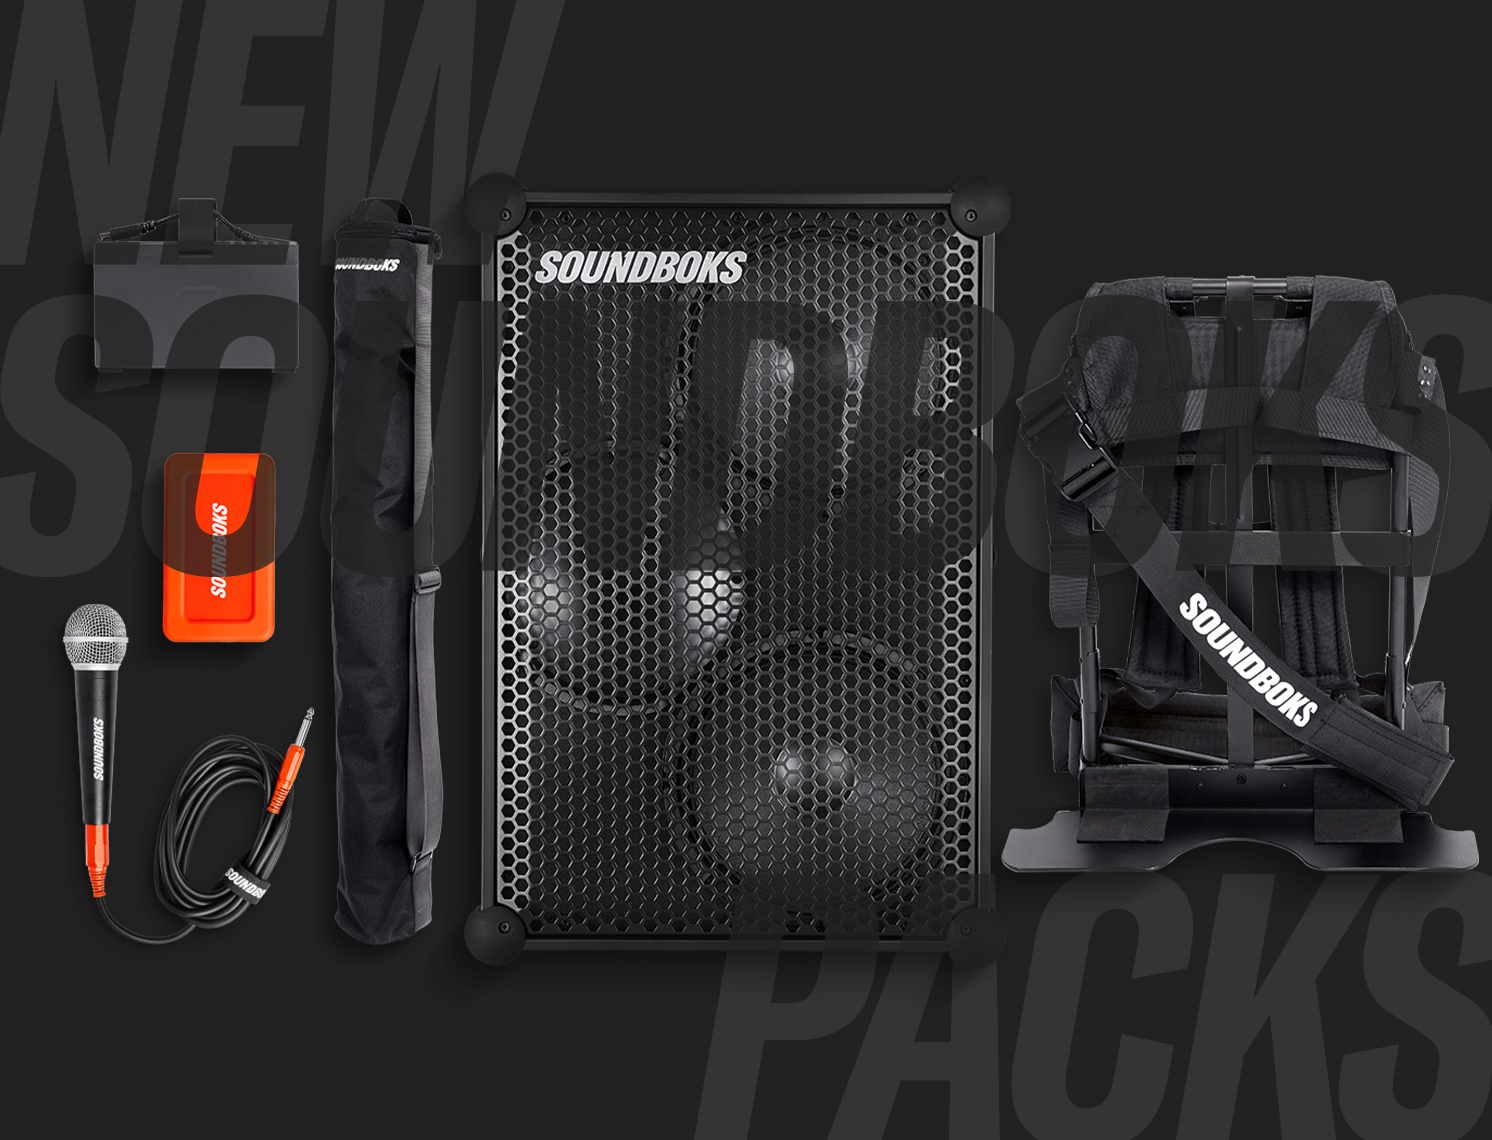 SOUNDBOKS speaker with battery power bank backpack and microphone